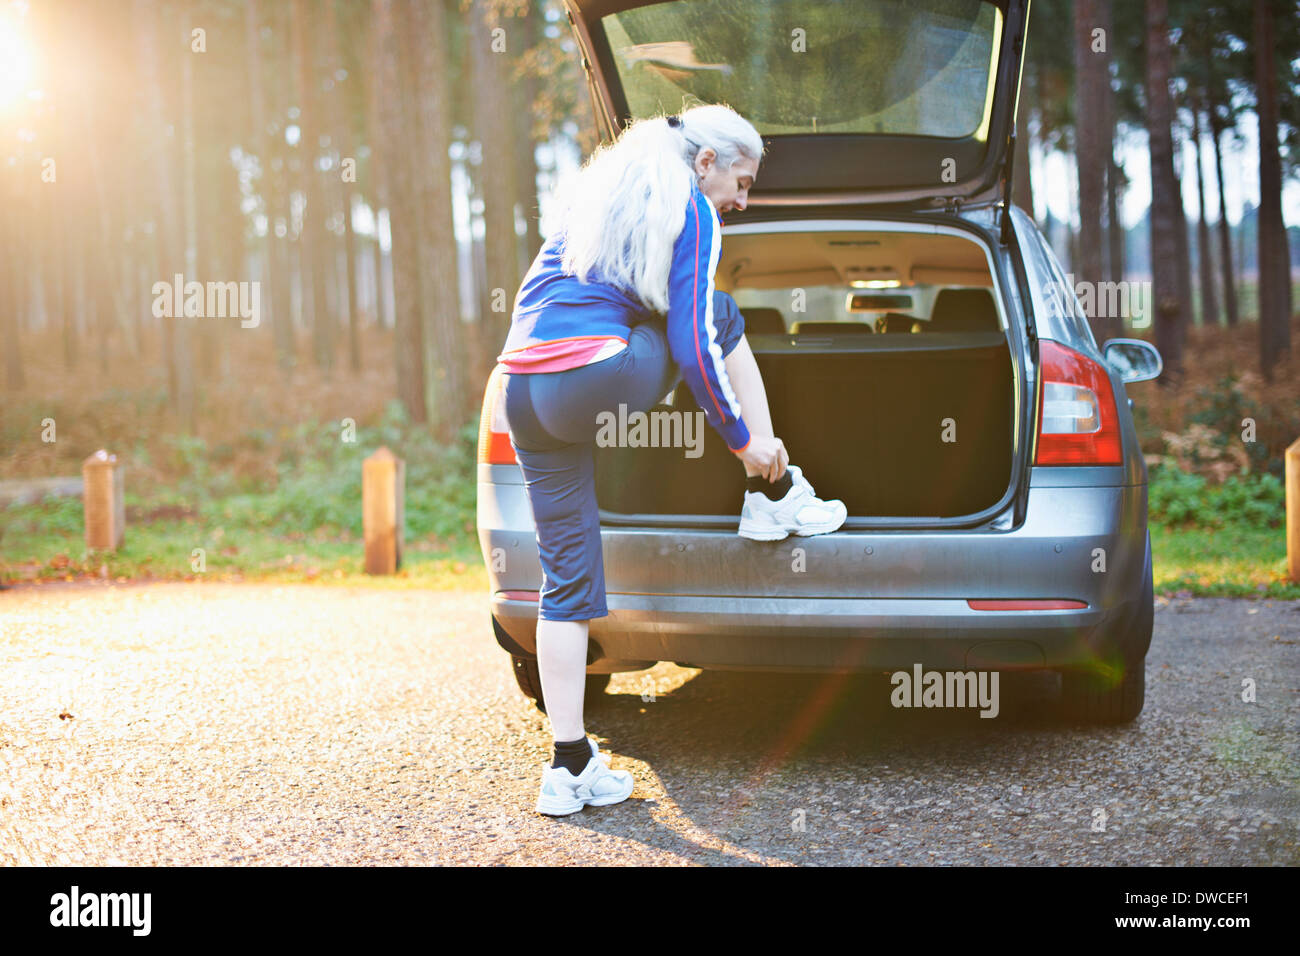 Mature woman putting on trainers on car boot - Stock Image